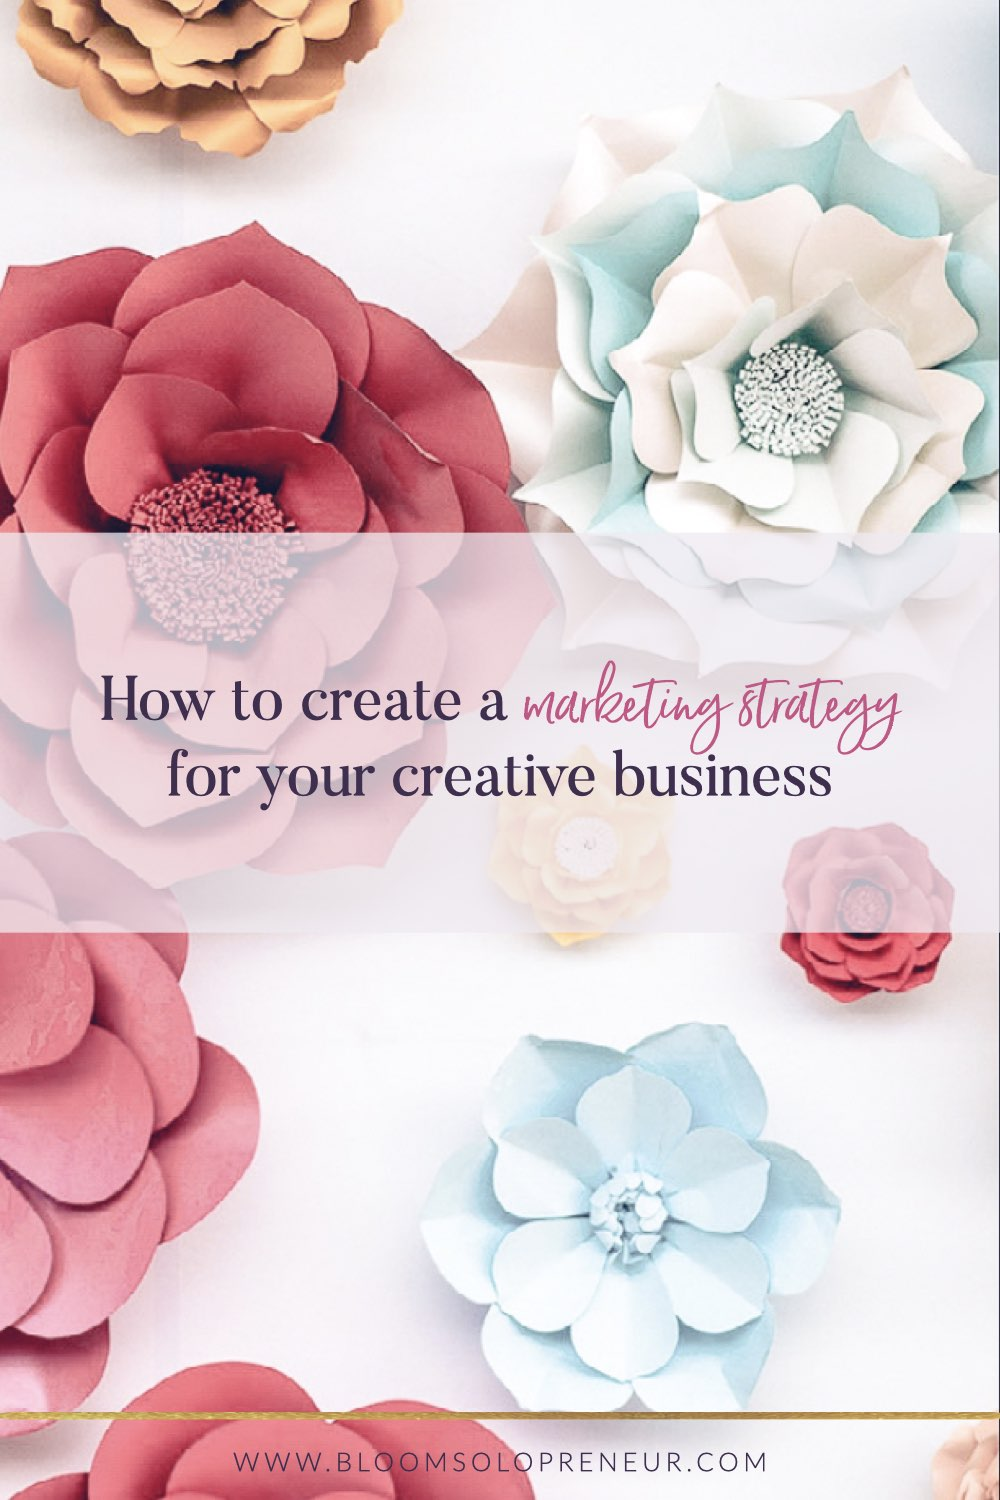 Creating a marketing strategy is often scary and deemed too complex for a small business, here we show you how to create one for your Etsy shop. A marketing strategy means coming up with ideas for your business to promote to your target audience. Let me help you walk through the steps to build your marketing strategy. #marketing #marketingtips #marketingonline #marketingideas #startabusiness #startablog #handmadebusiness #craftbusiness #creativebusiness #bloomsolopreneur